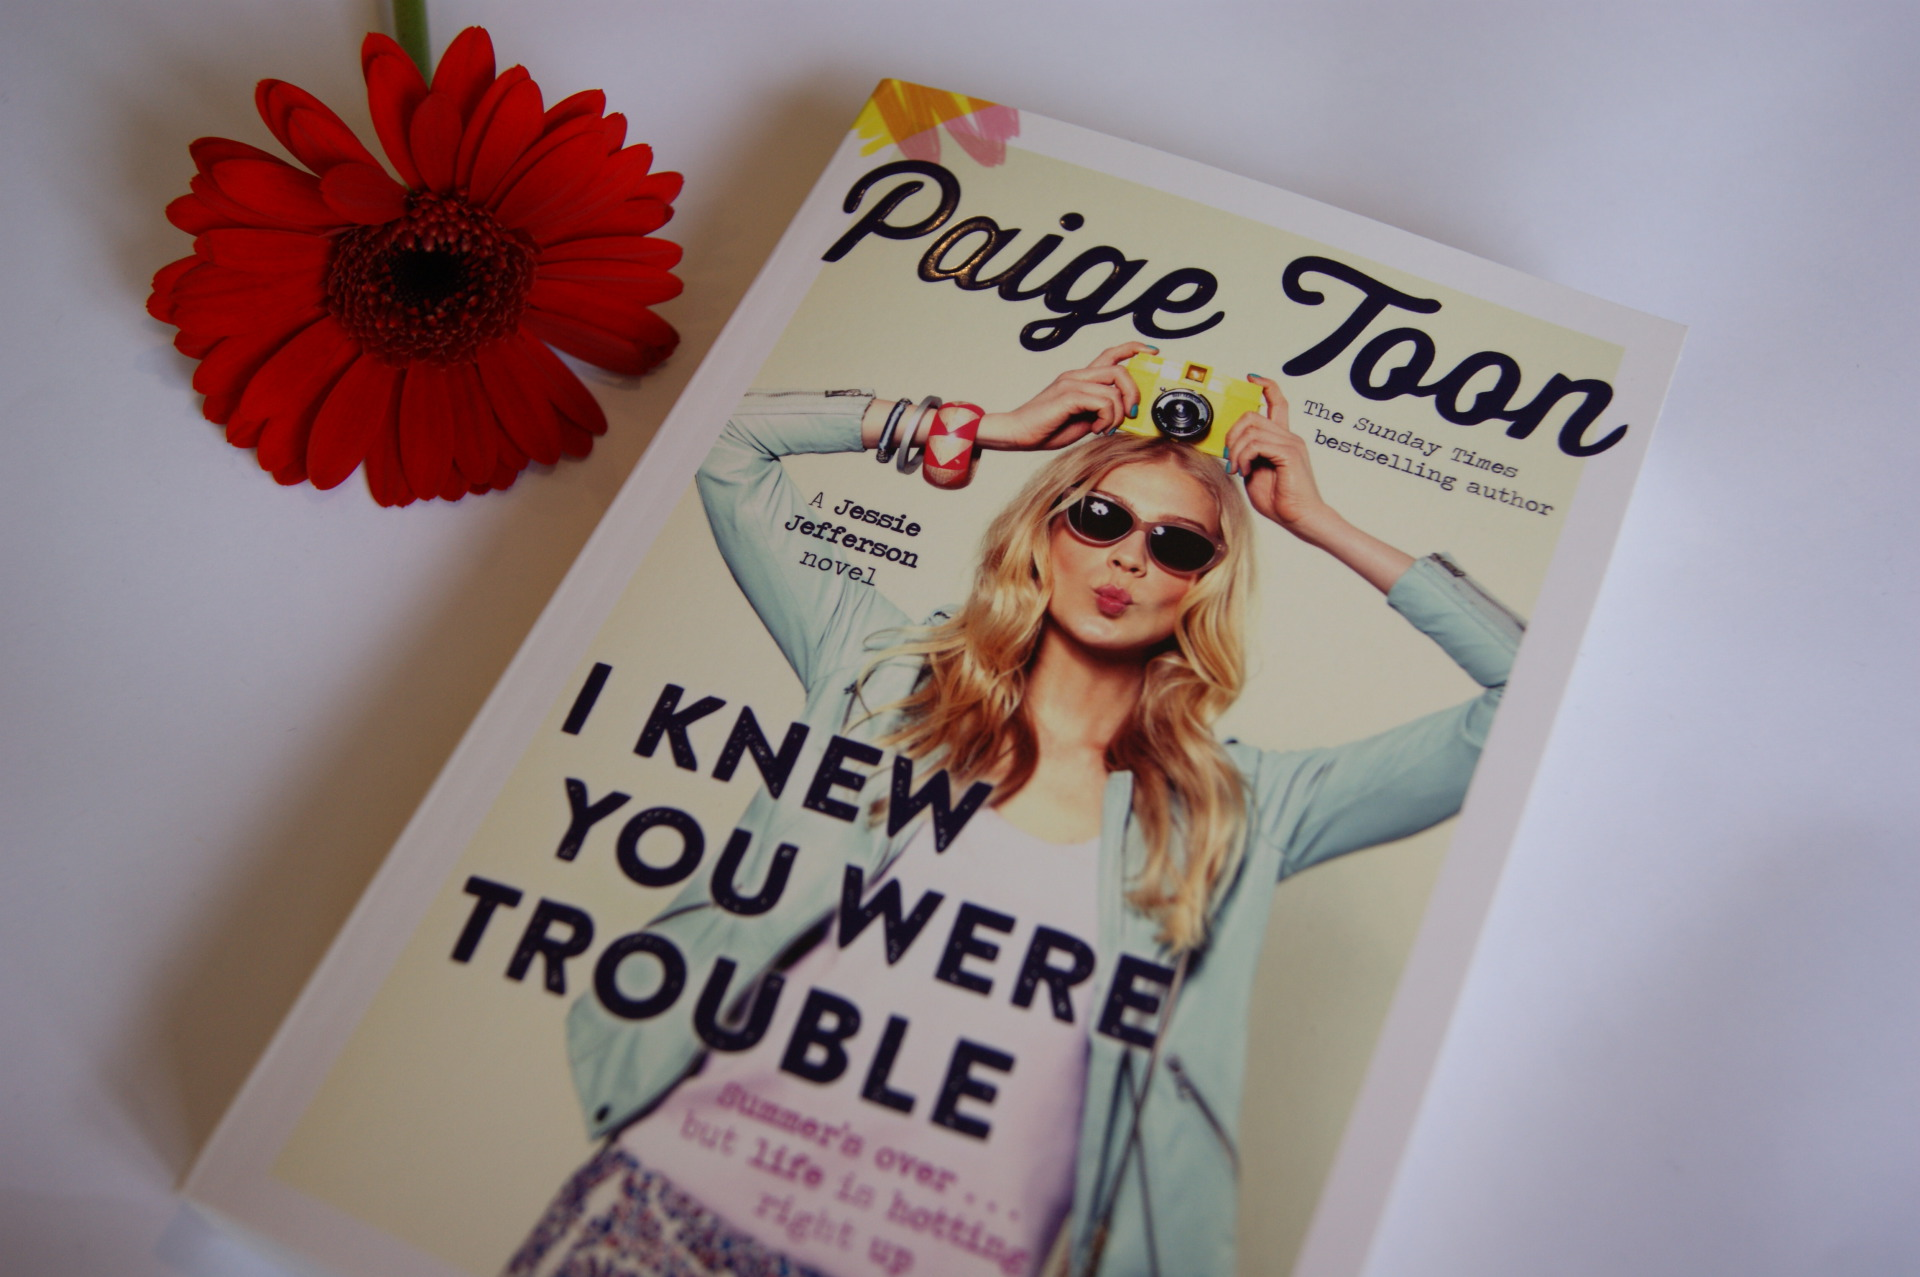 Paige Toon - I knew you were trouble - Book Review